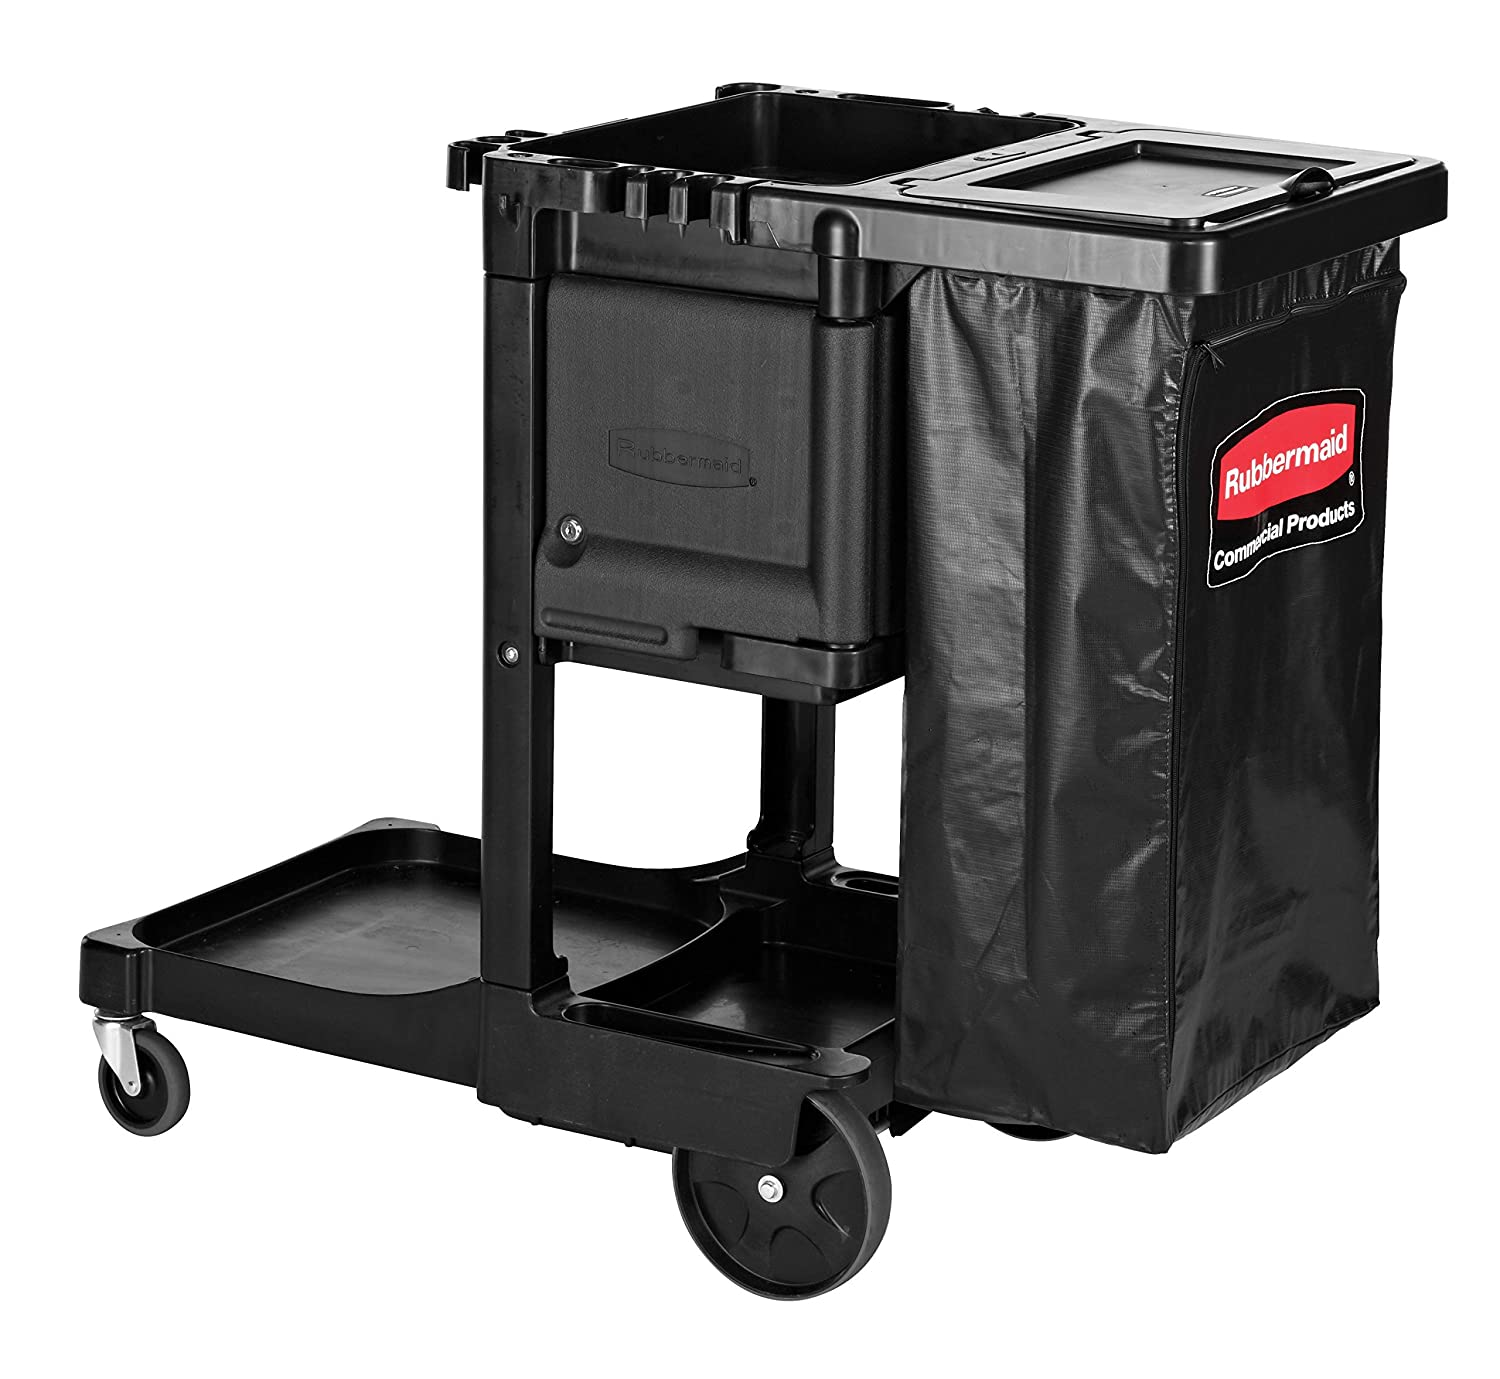 Rubbermaid Commercial quality assurance Products-1861430 Credence Janitor Executive Series